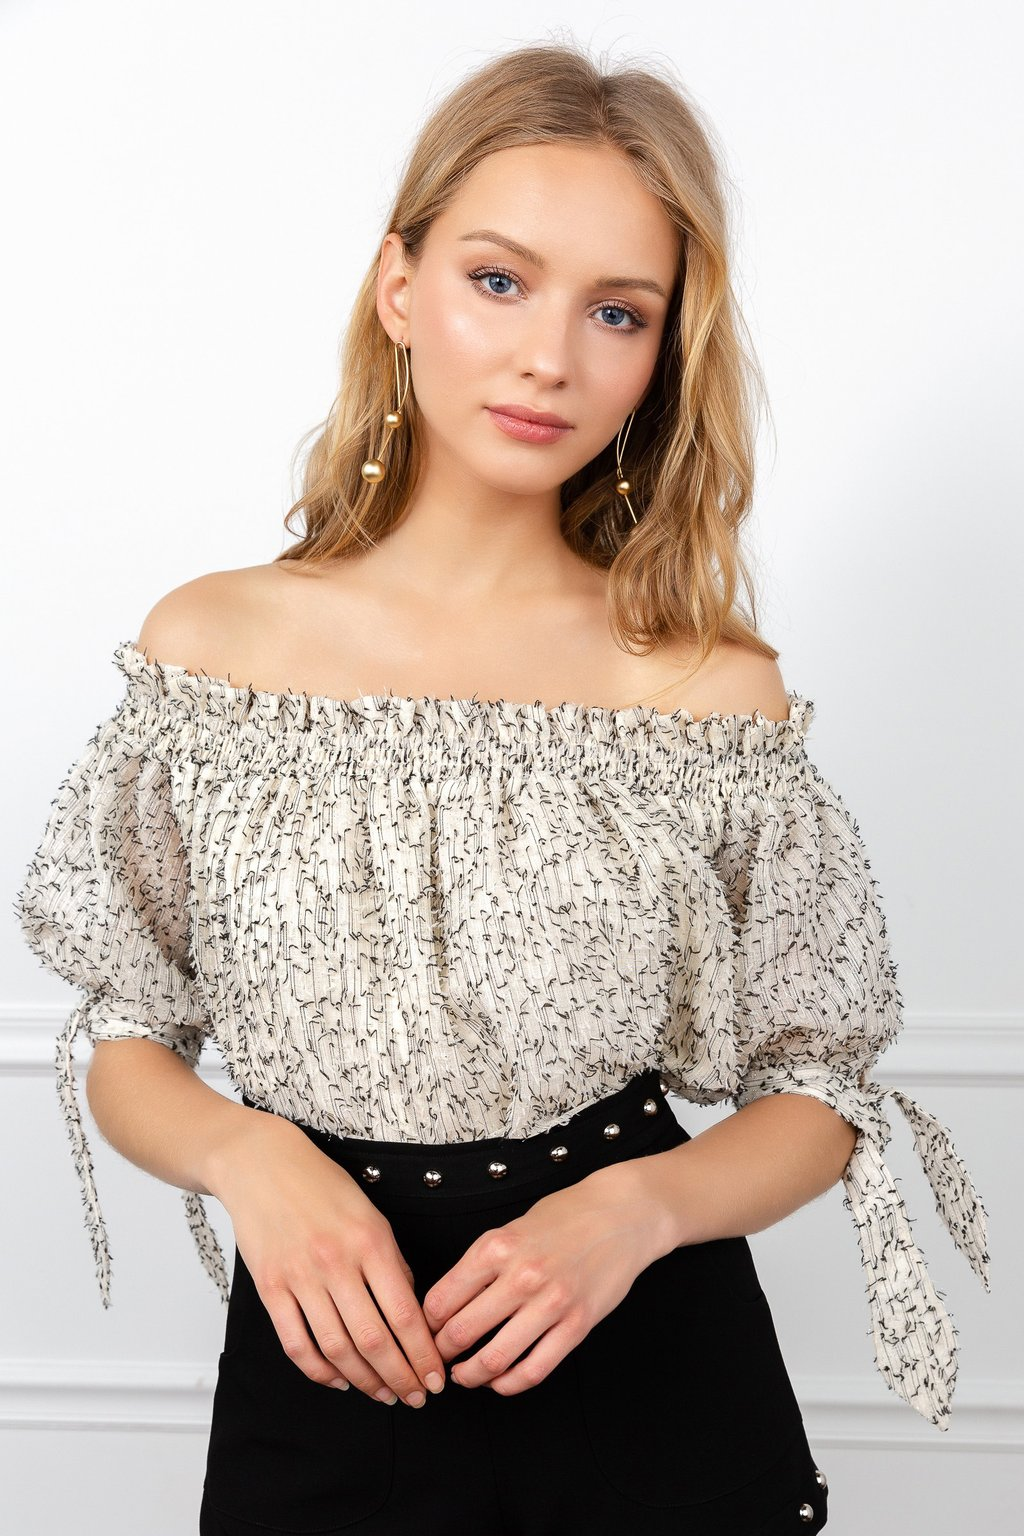 Cathy Cold Shoulder Blouse by J.ING LA women's fashion